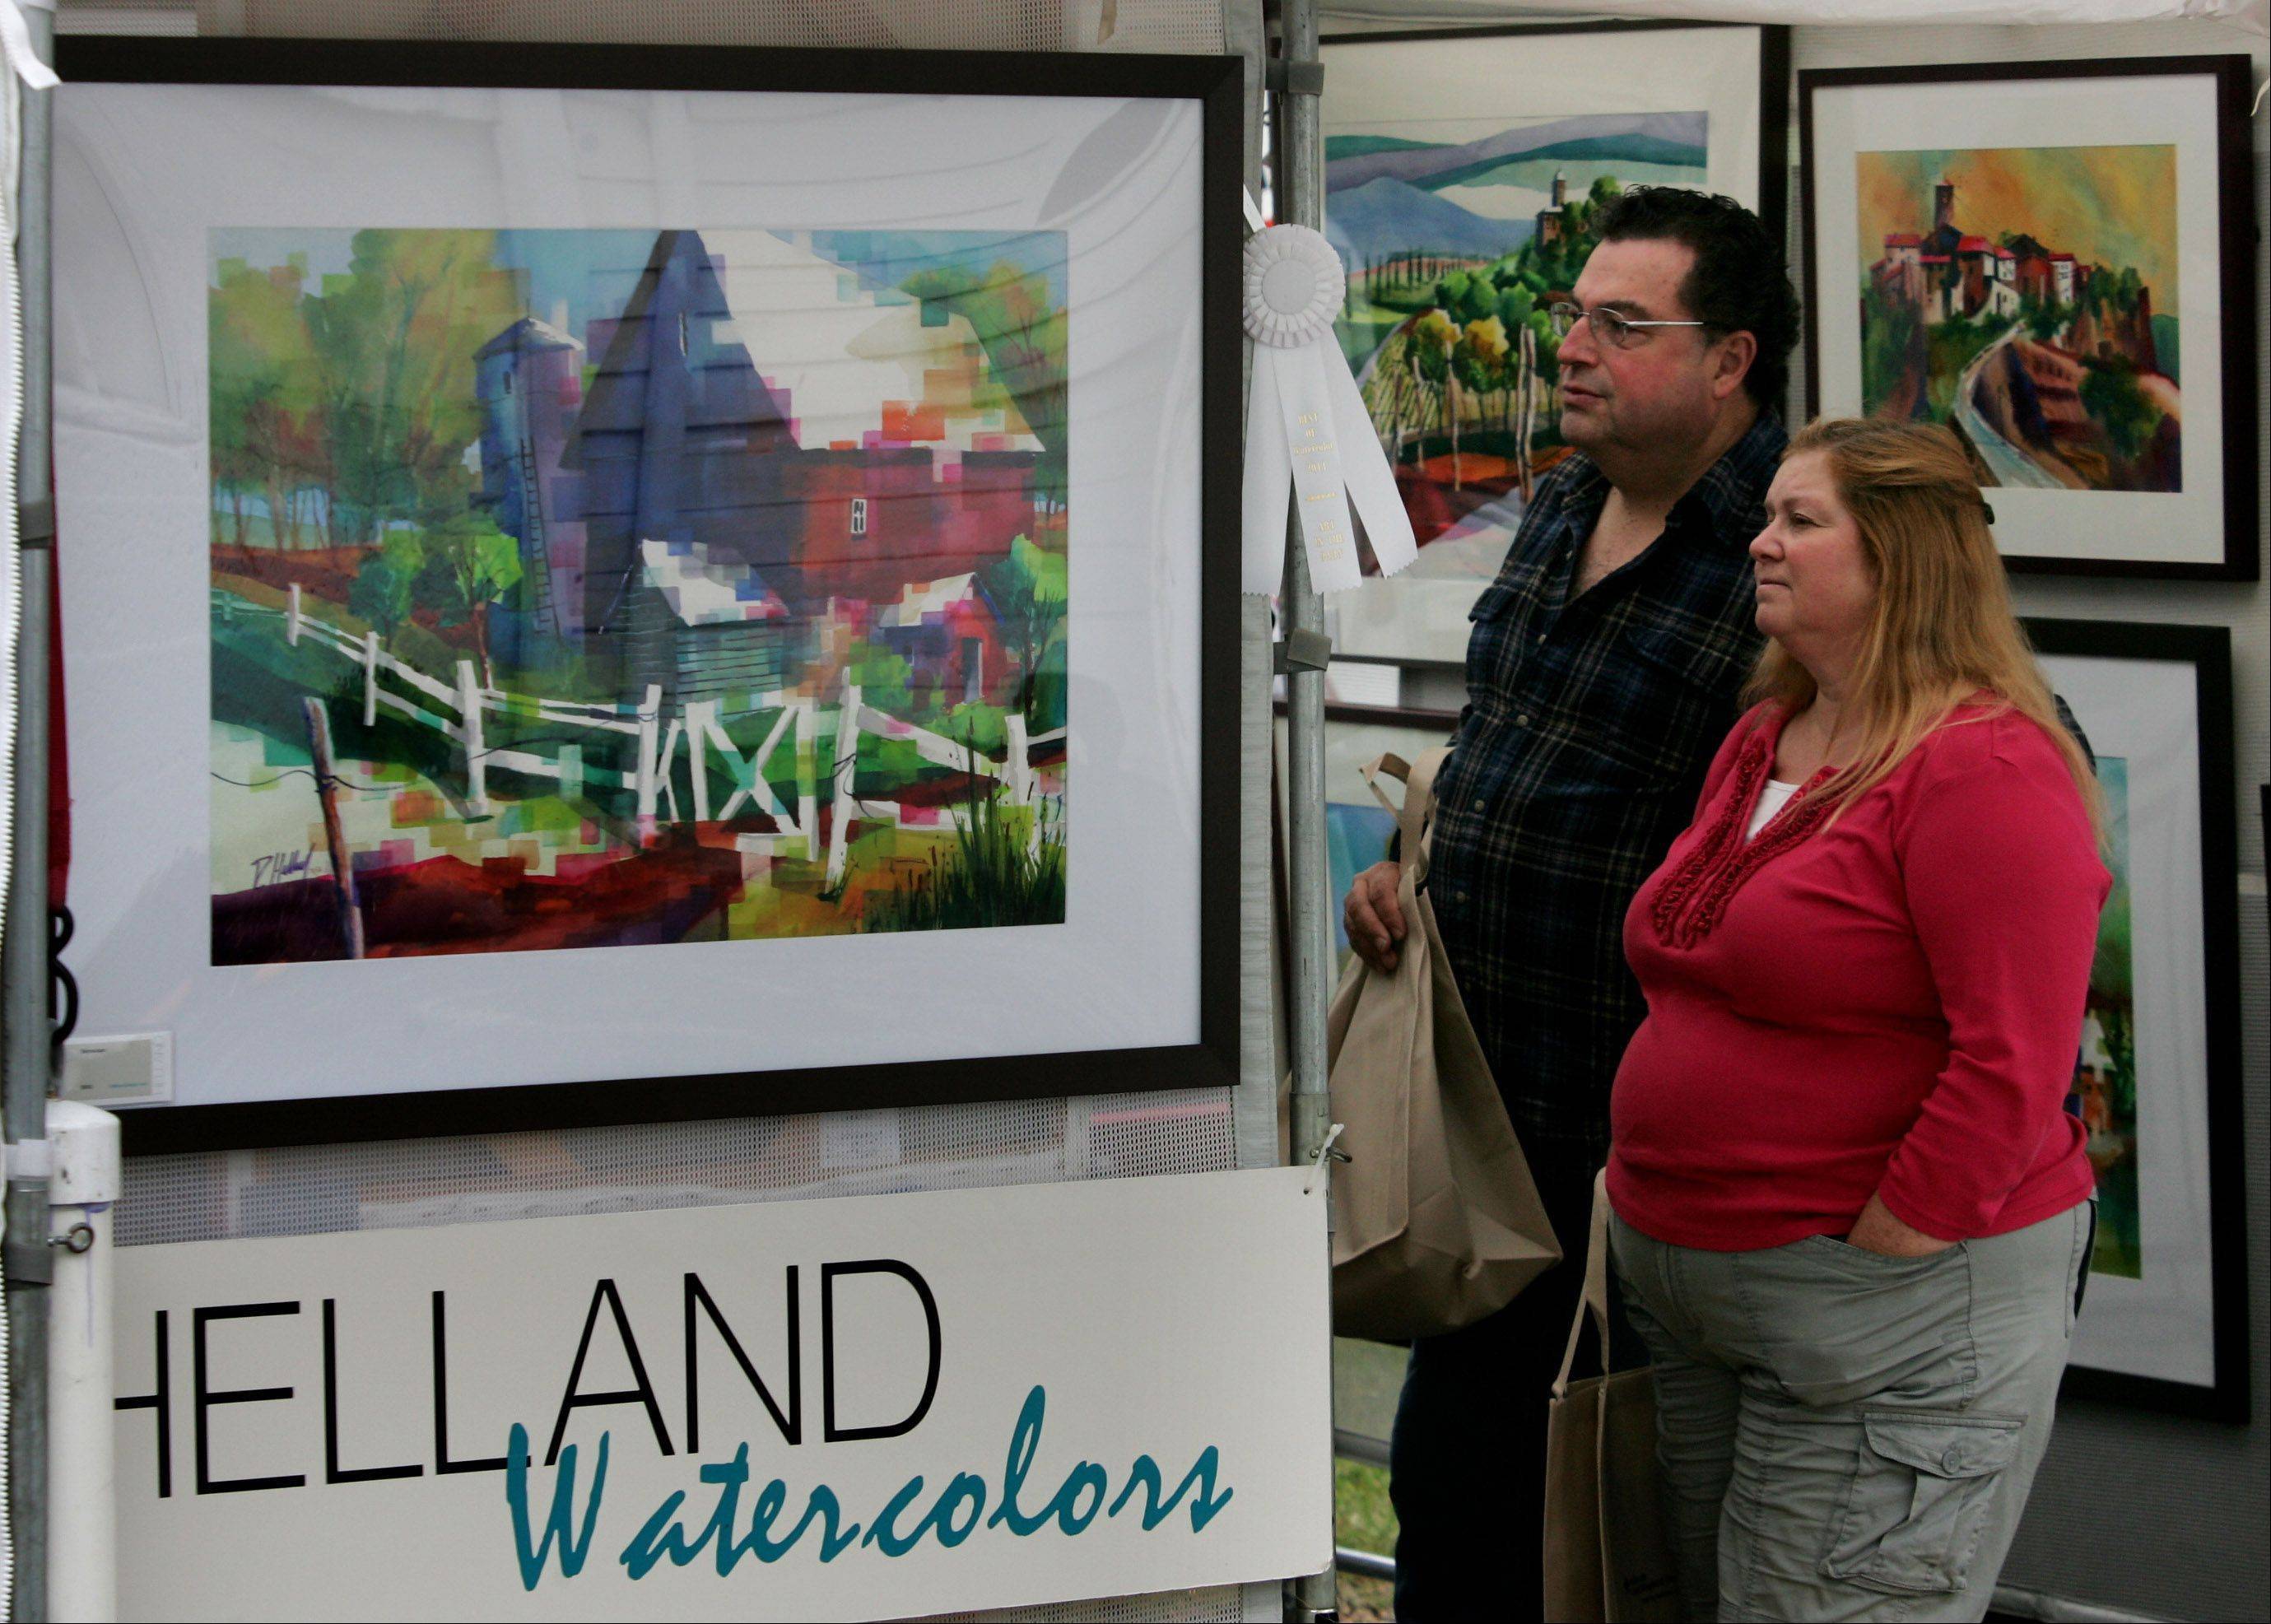 Andre and Gail Peters of Cary look at the artwork of Richard Helland of Palatine during the 2011 Art in the Barn. This painting won first place for watercolors in the juried show.